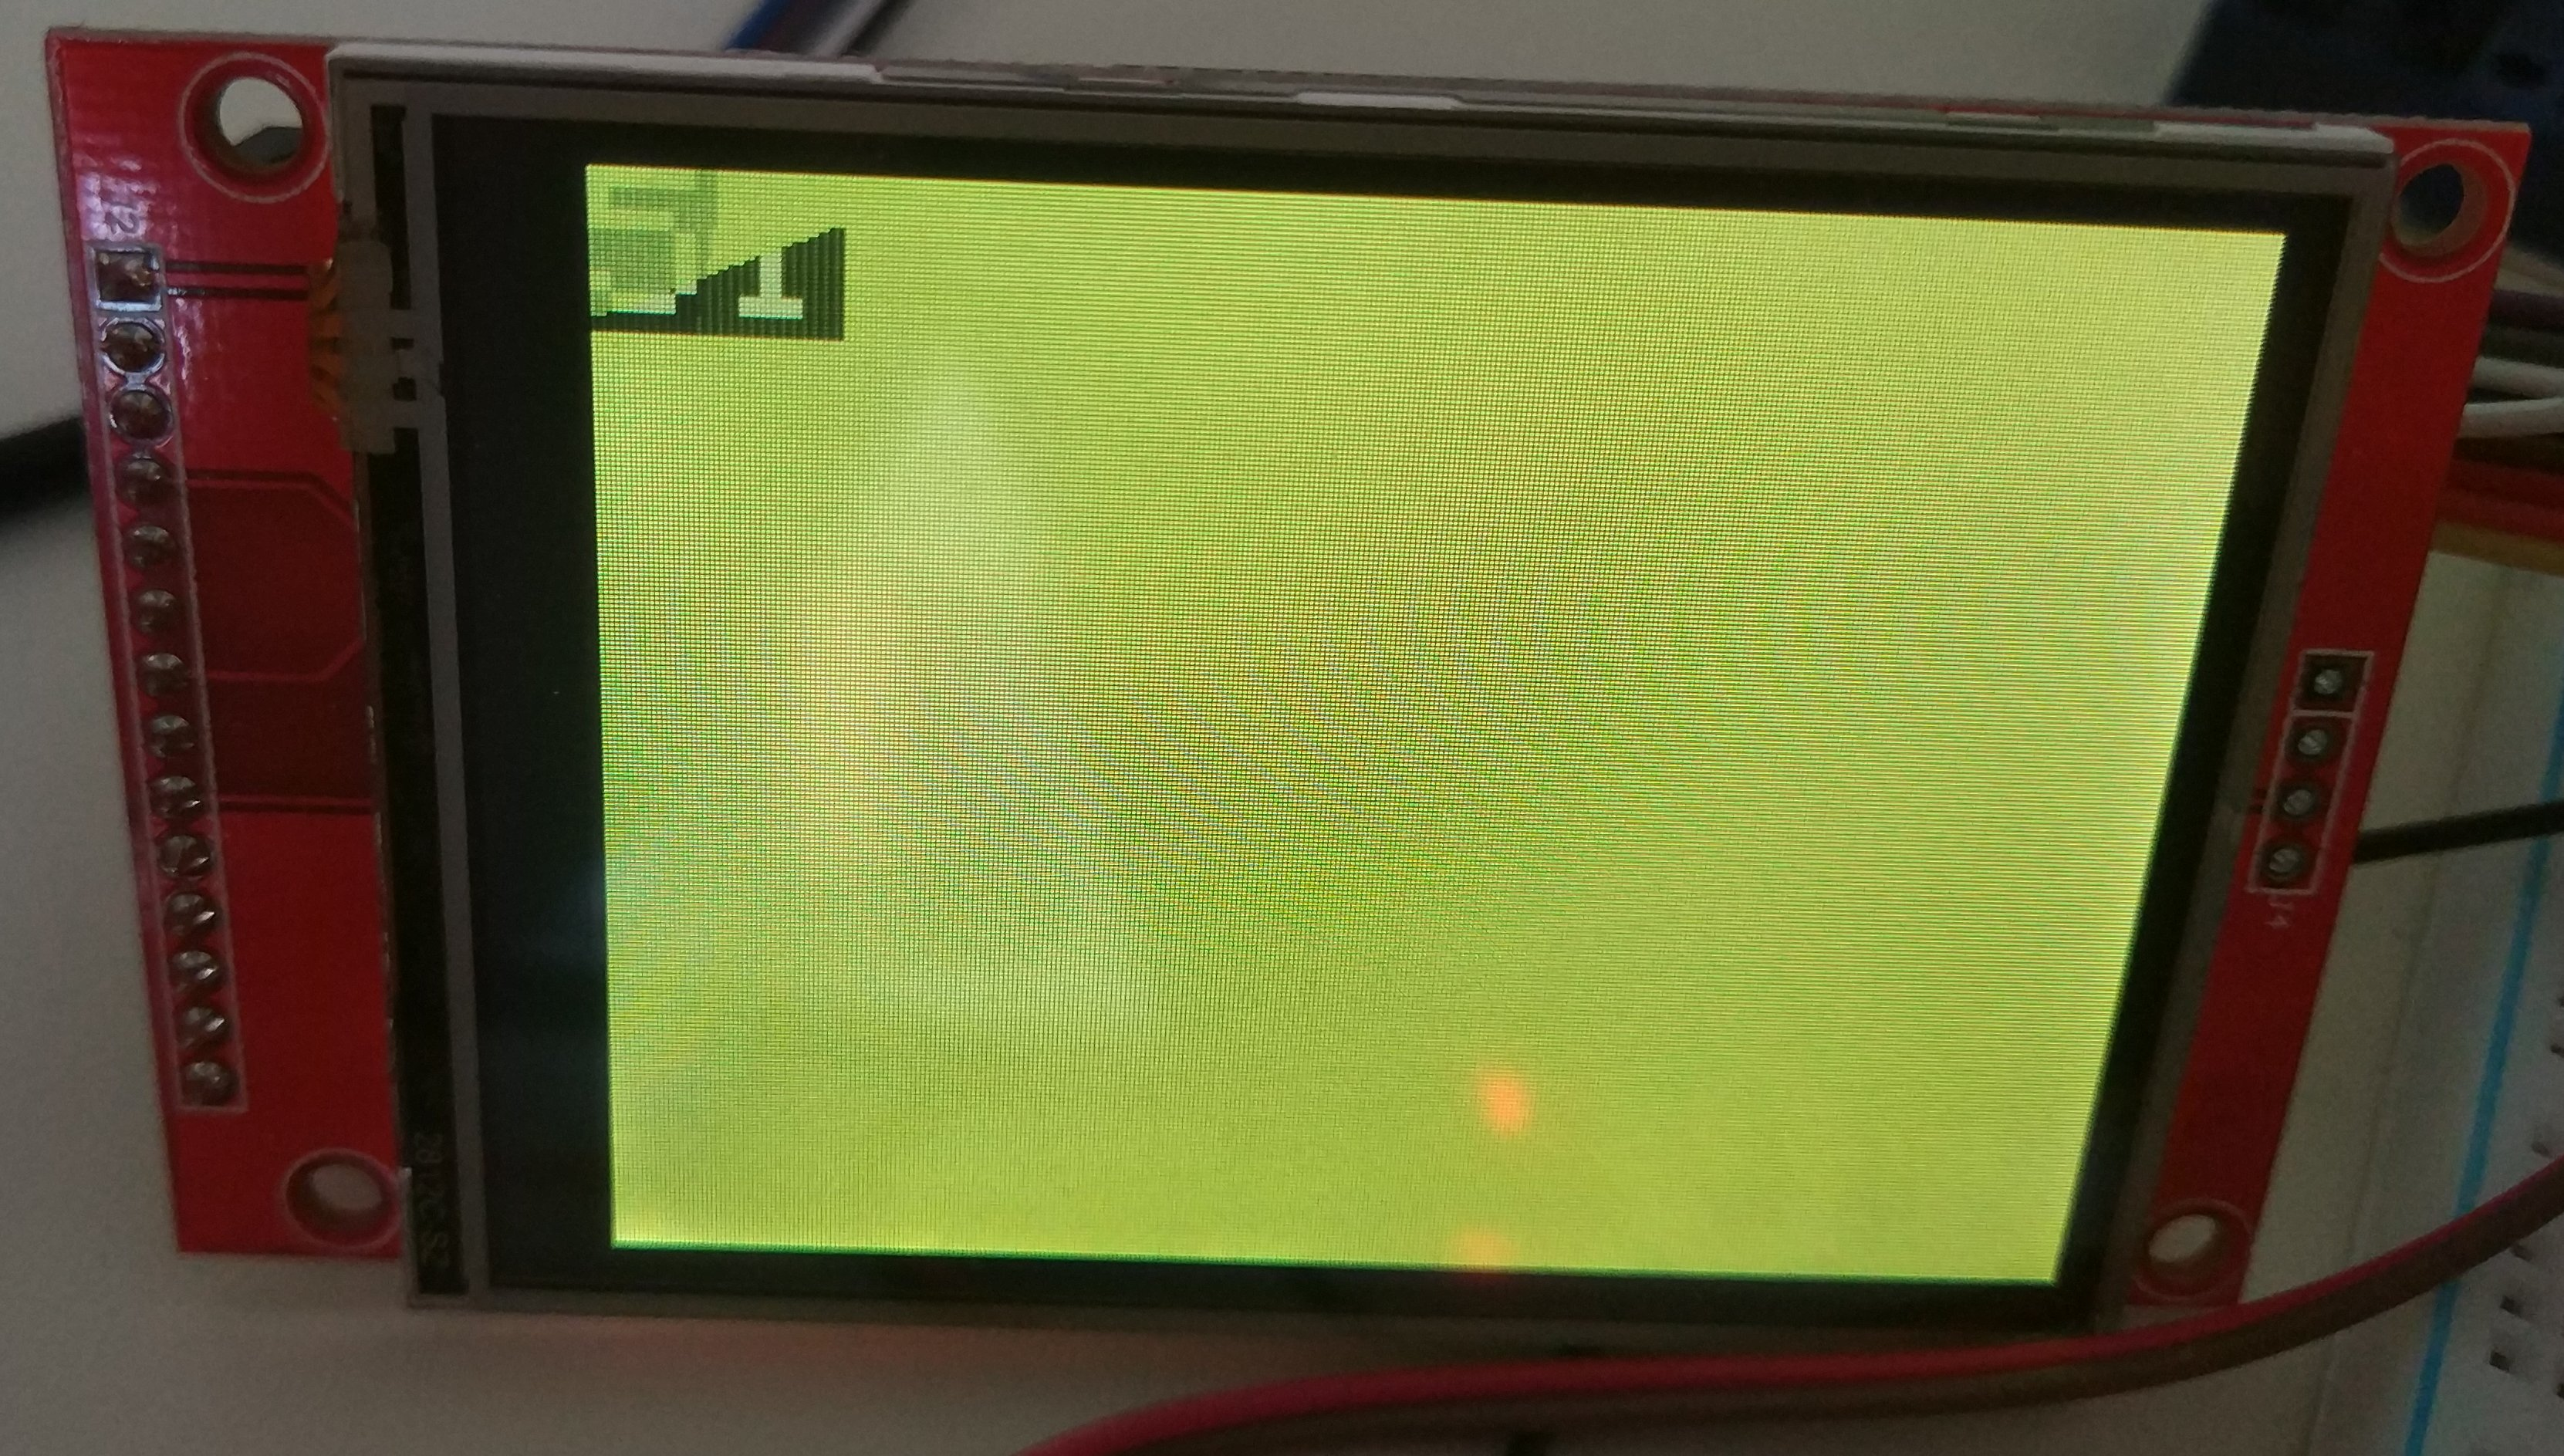 Driving an ILI9341 LCD with an overclocked stm32f103 (updated